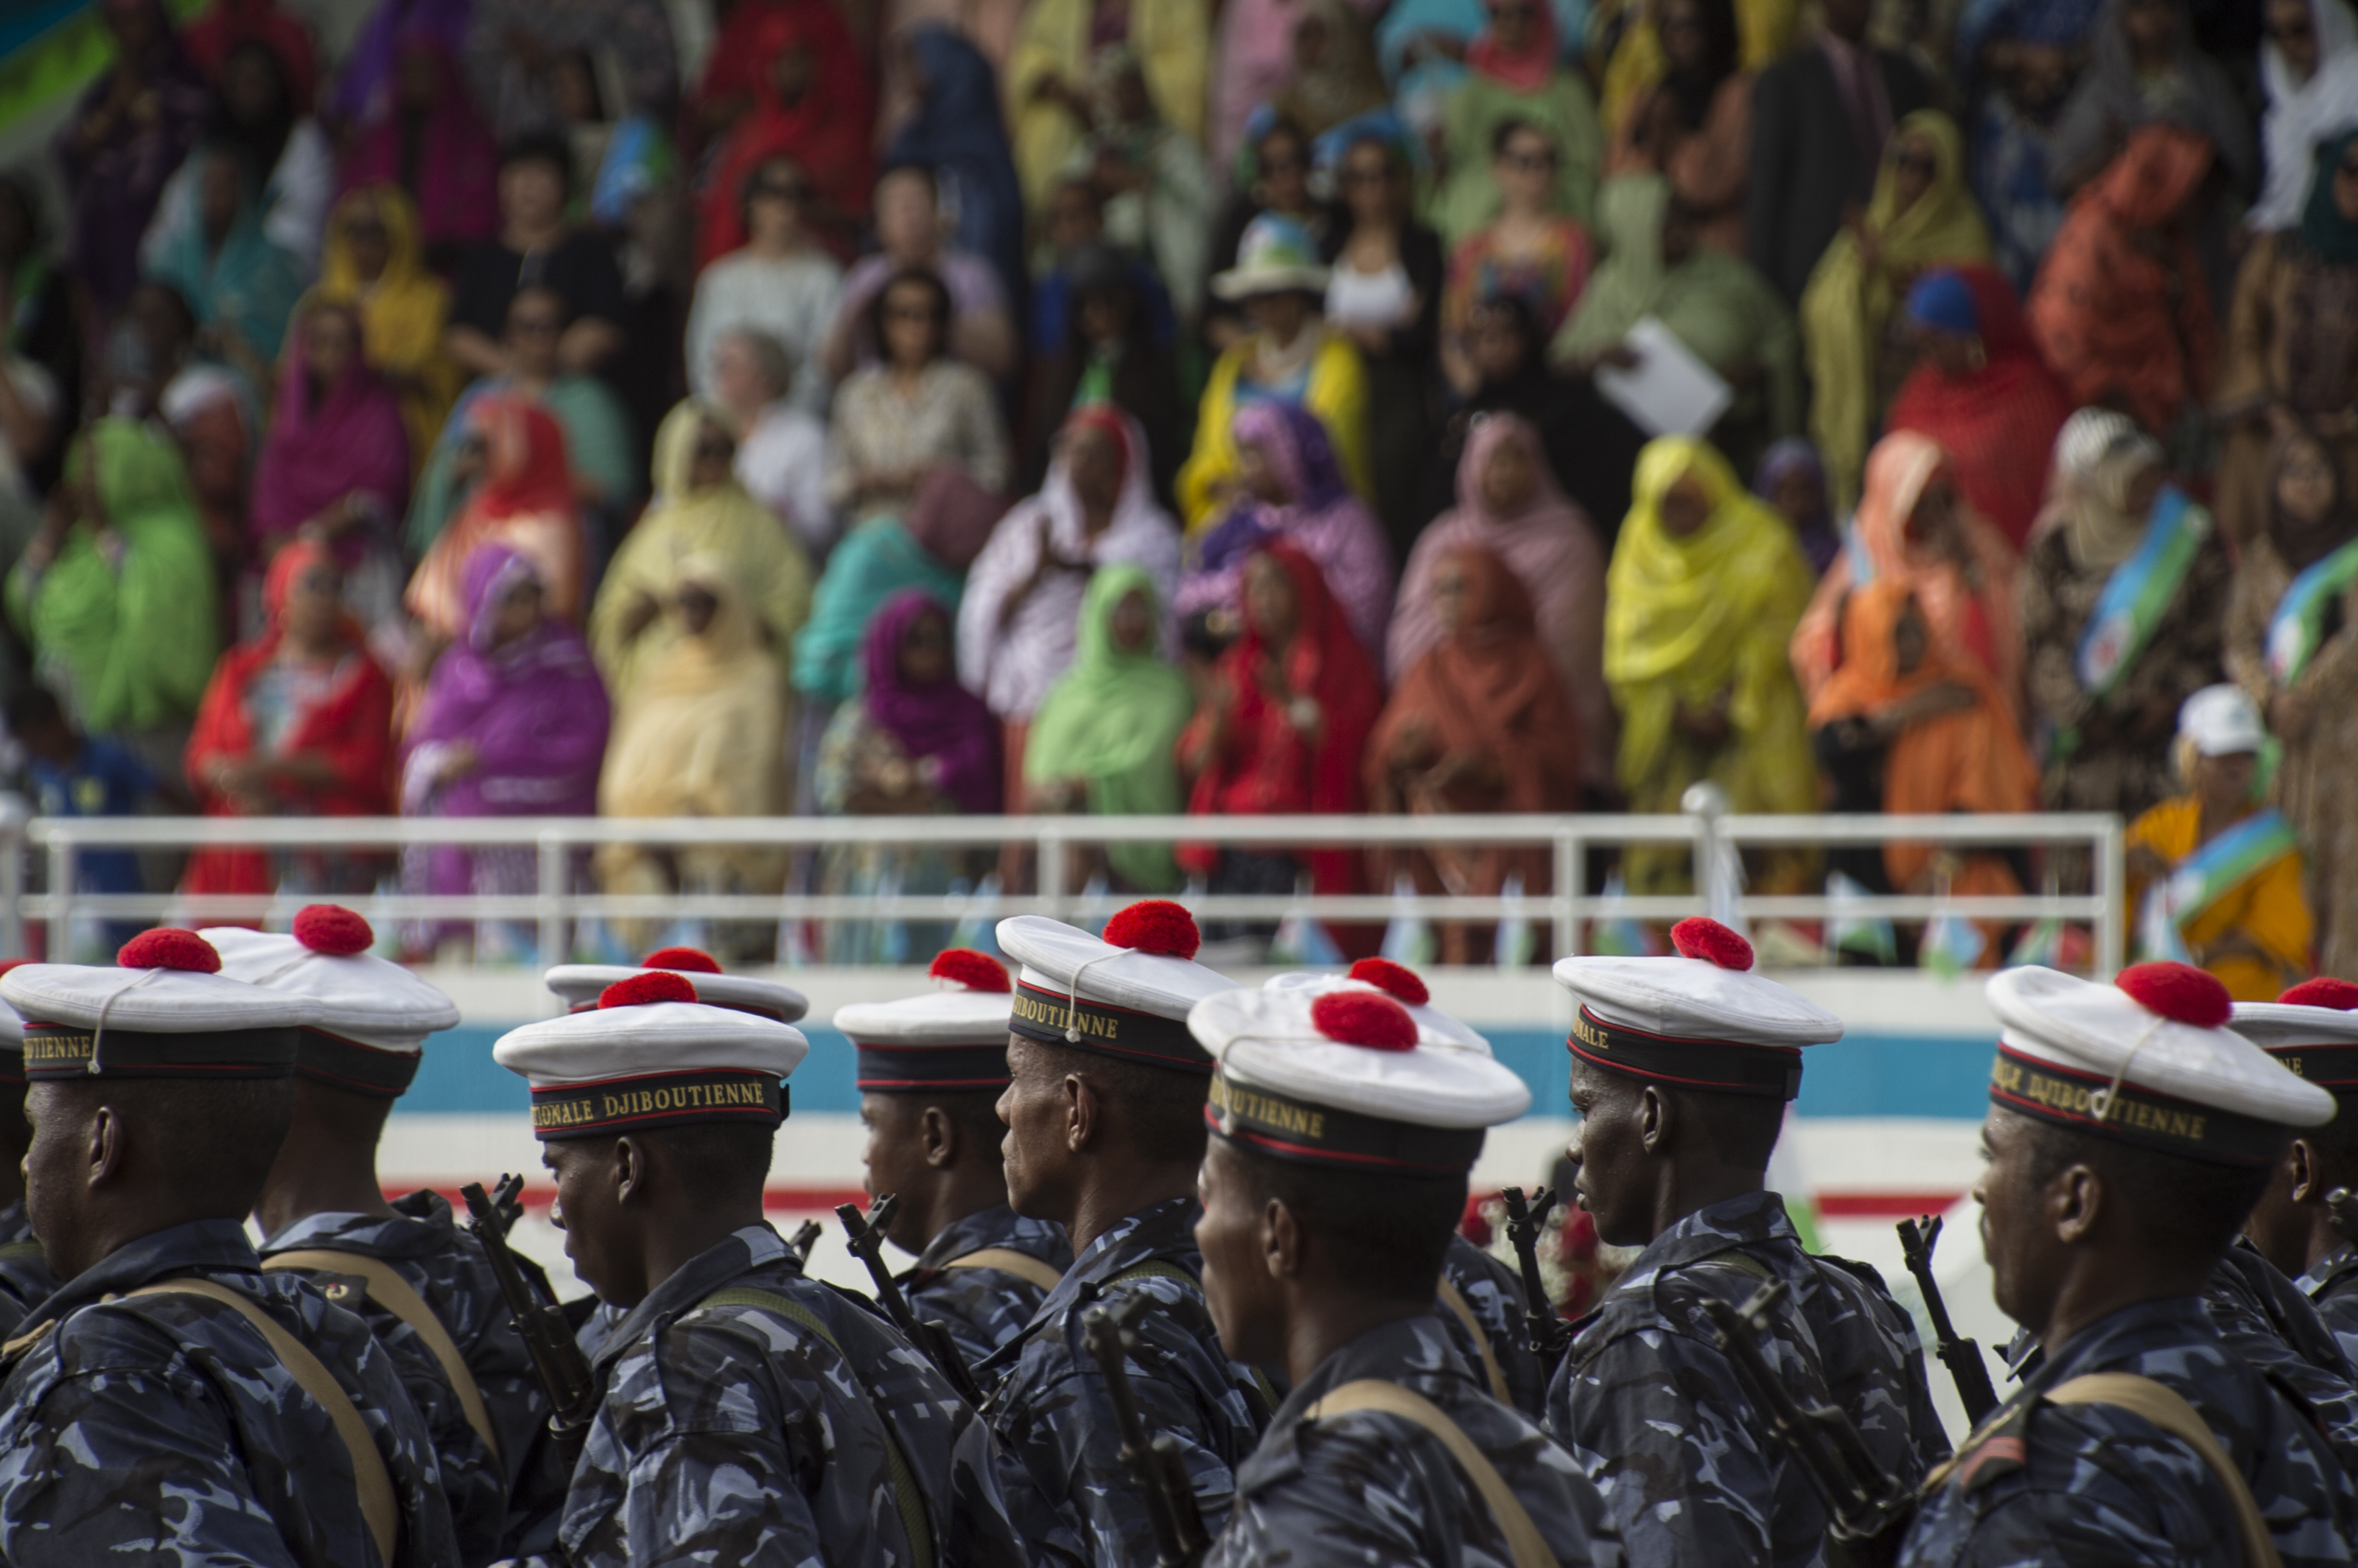 U.S. service members from Camp Lemonnier, Djibouti, participated in a military parade in Djibouti City celebrating the country's 40th annual Independence Day, June 27, 2017. Hosted by the president of Djibouti, Ismail Omar Guelleh, the parade is held annually to mark Djibouti's declaration of independence from France.  In addition to the Djiboutian Armed Forces, service members from Italy, France, Japan, China and the U.S. also marched in the parade. The event offered an opportunity for the militaries of various nations with a presence in Djibouti to show support for shared goals in the region, including security and stability. (U.S. Air National Guard photo by Tech. Sgt. Joe Harwood)